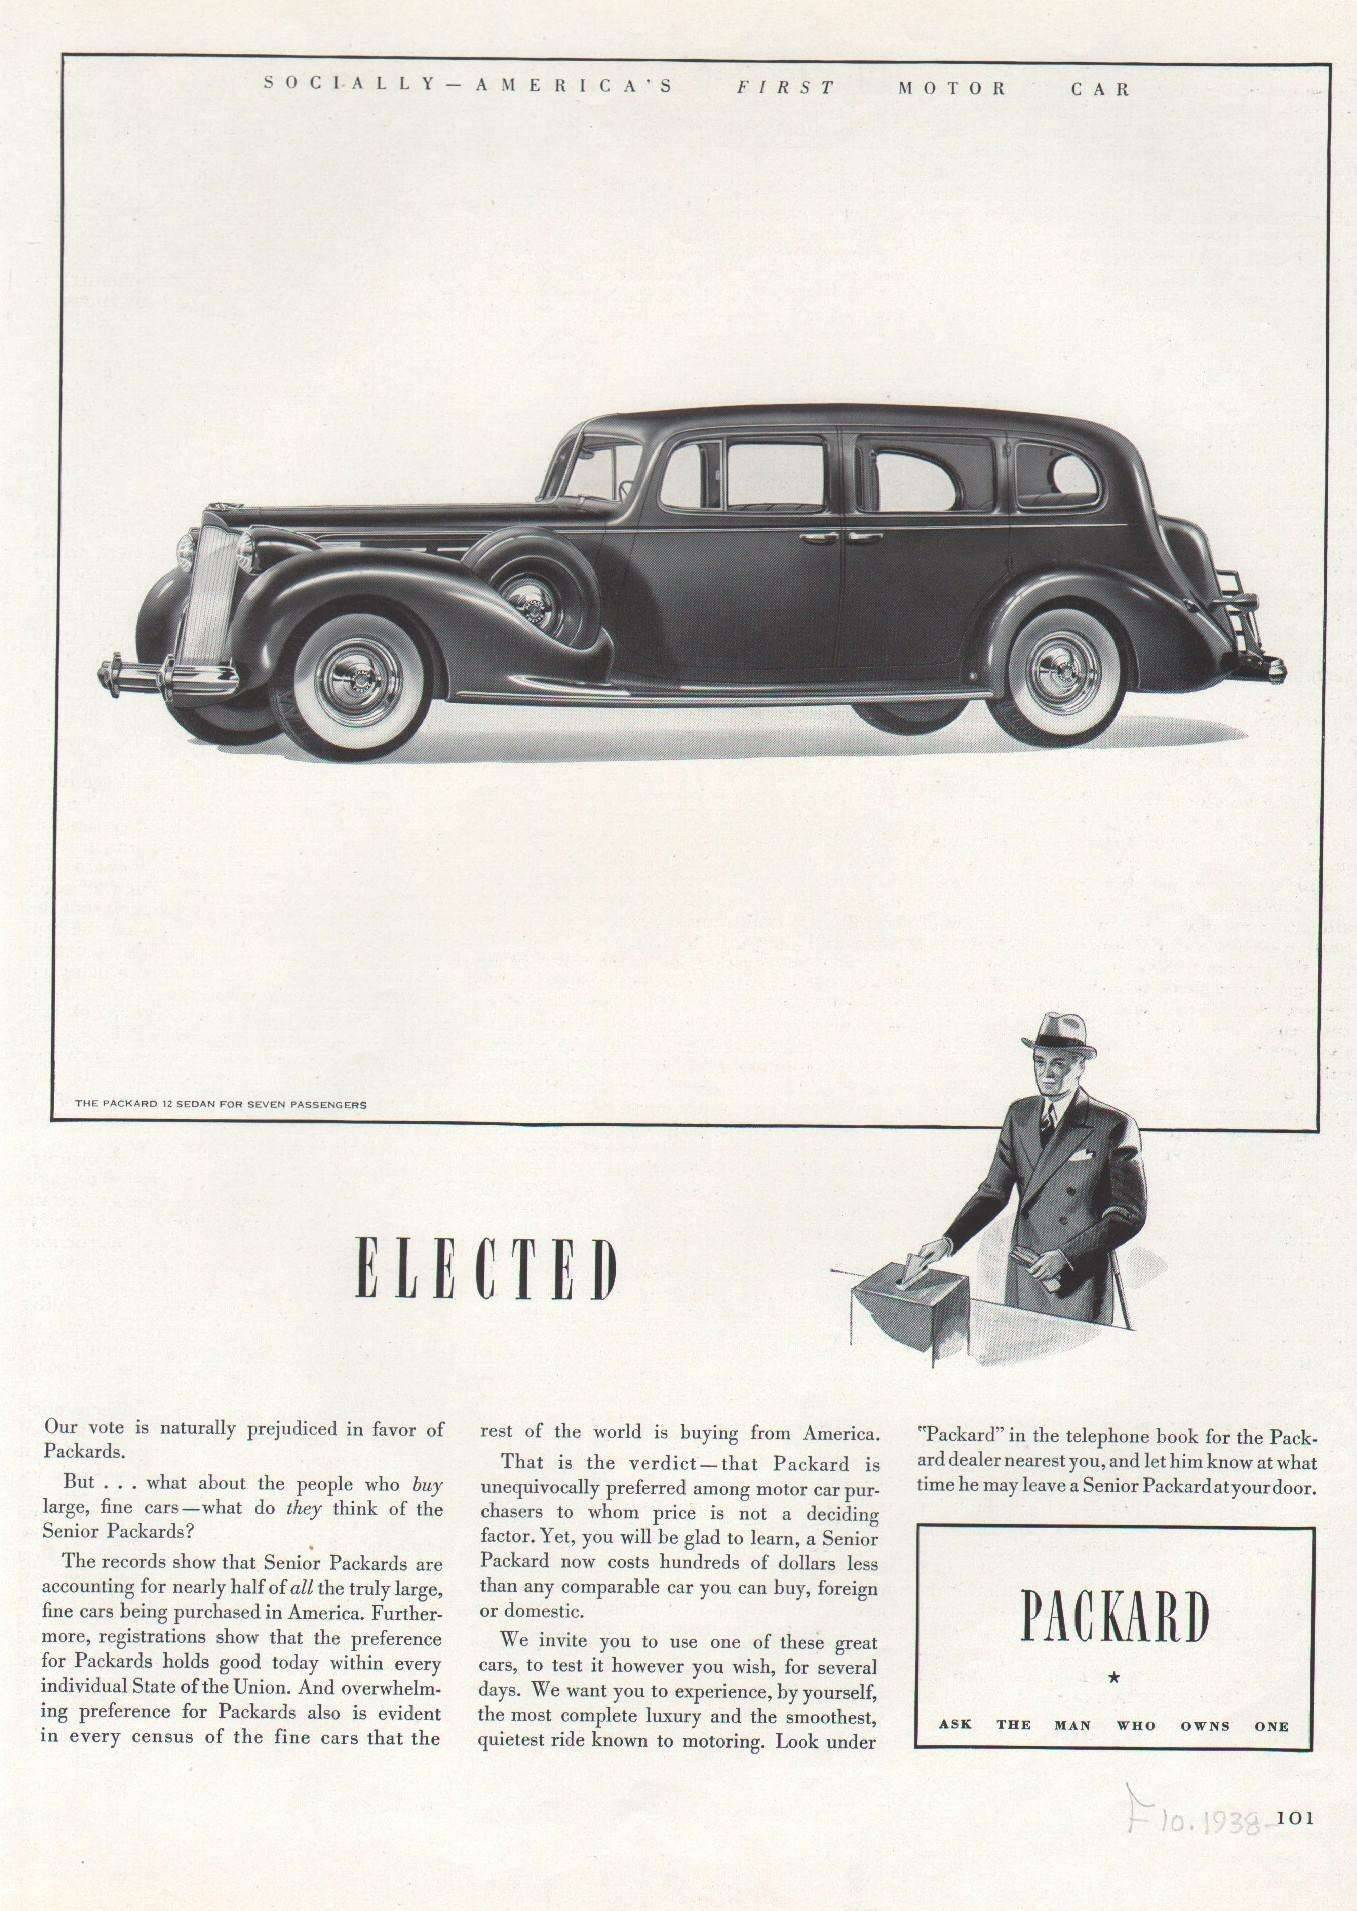 1938 Twelve Sedan for 7 Passengers Advertisement - Fortune Magazine 10/38